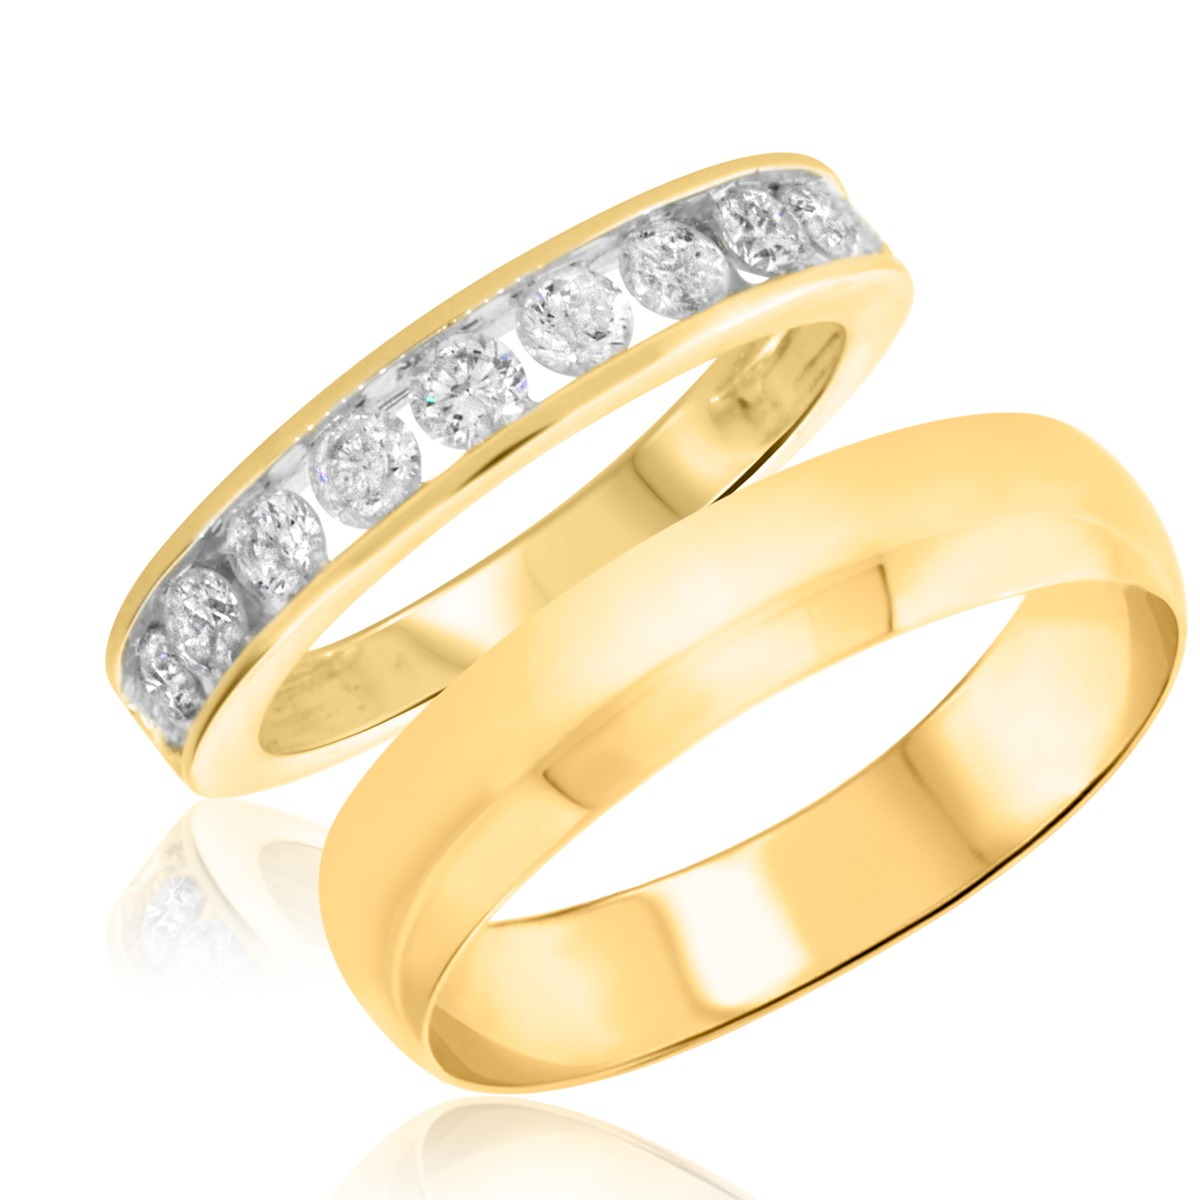 7/8 Carat T.W. Round Cut Diamond His and Hers Wedding Band Set 10K Yellow Gold